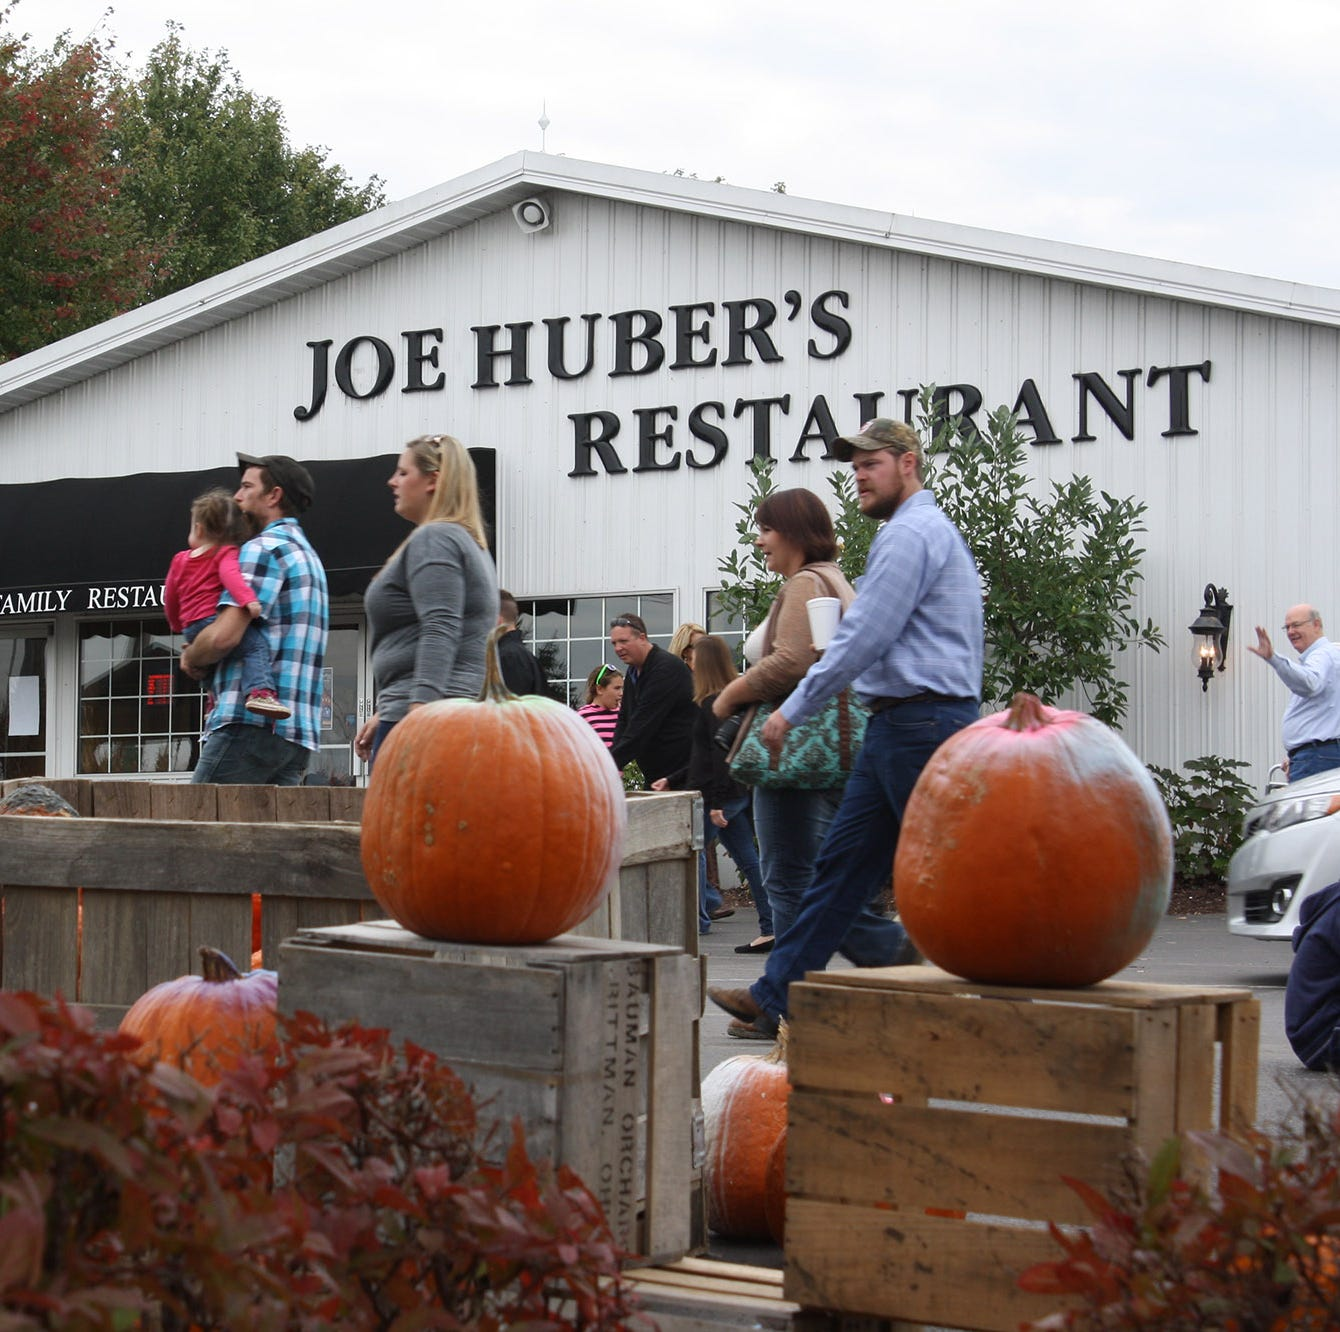 5 things we'll miss if Joe Huber's Family Restaurant goes away